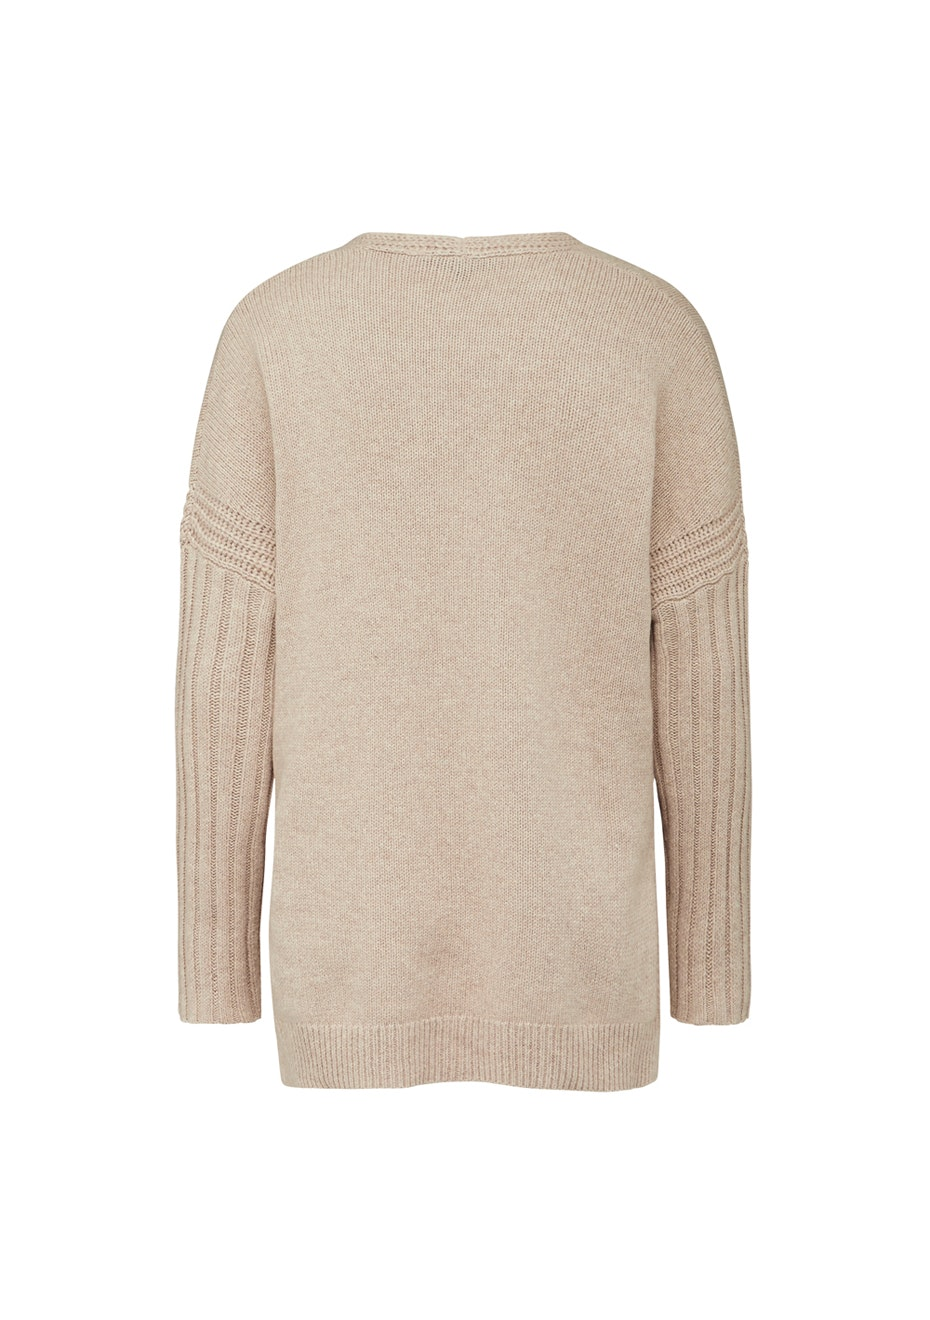 French Connection - Cairo Cable Knit - Light Camel Marle